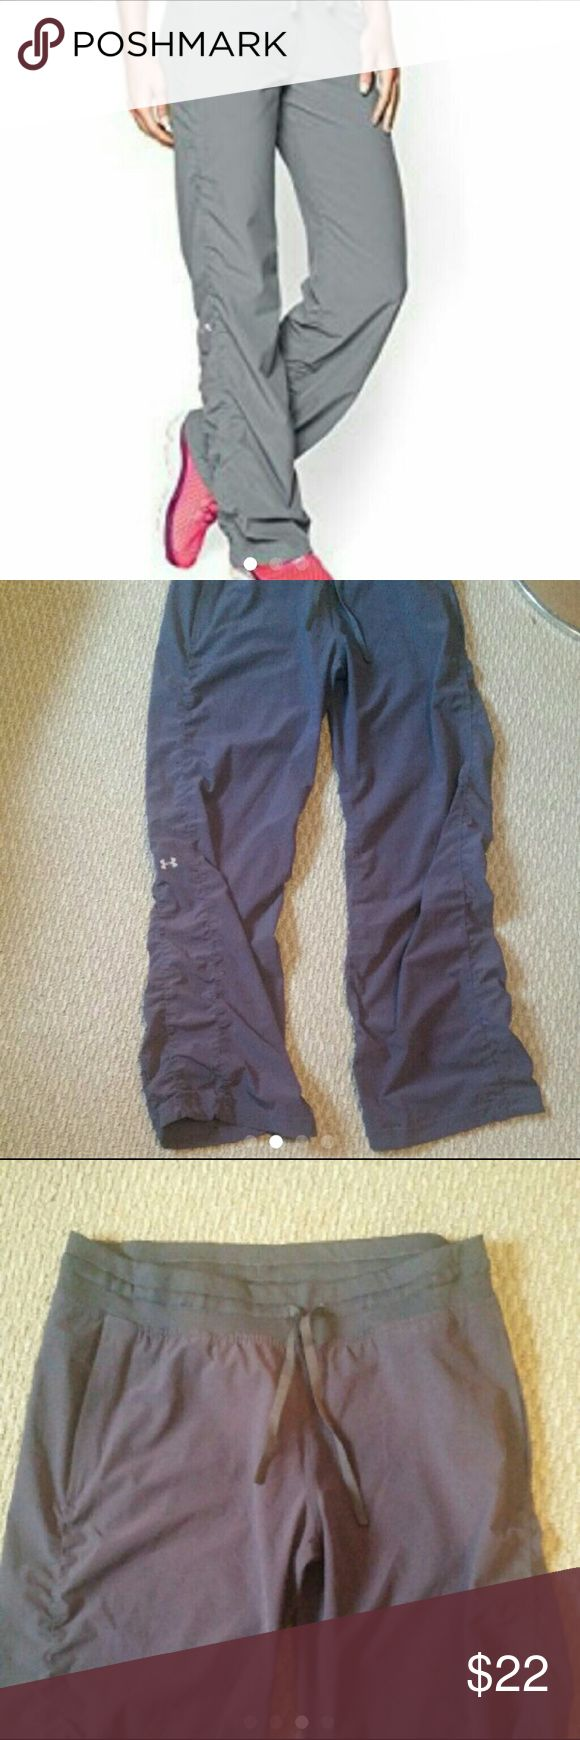 Men's under Armour xl storm pants Like new Windbreaker pants  Size xl Under Armour pants  It's storm under Armou Under Armour Pants